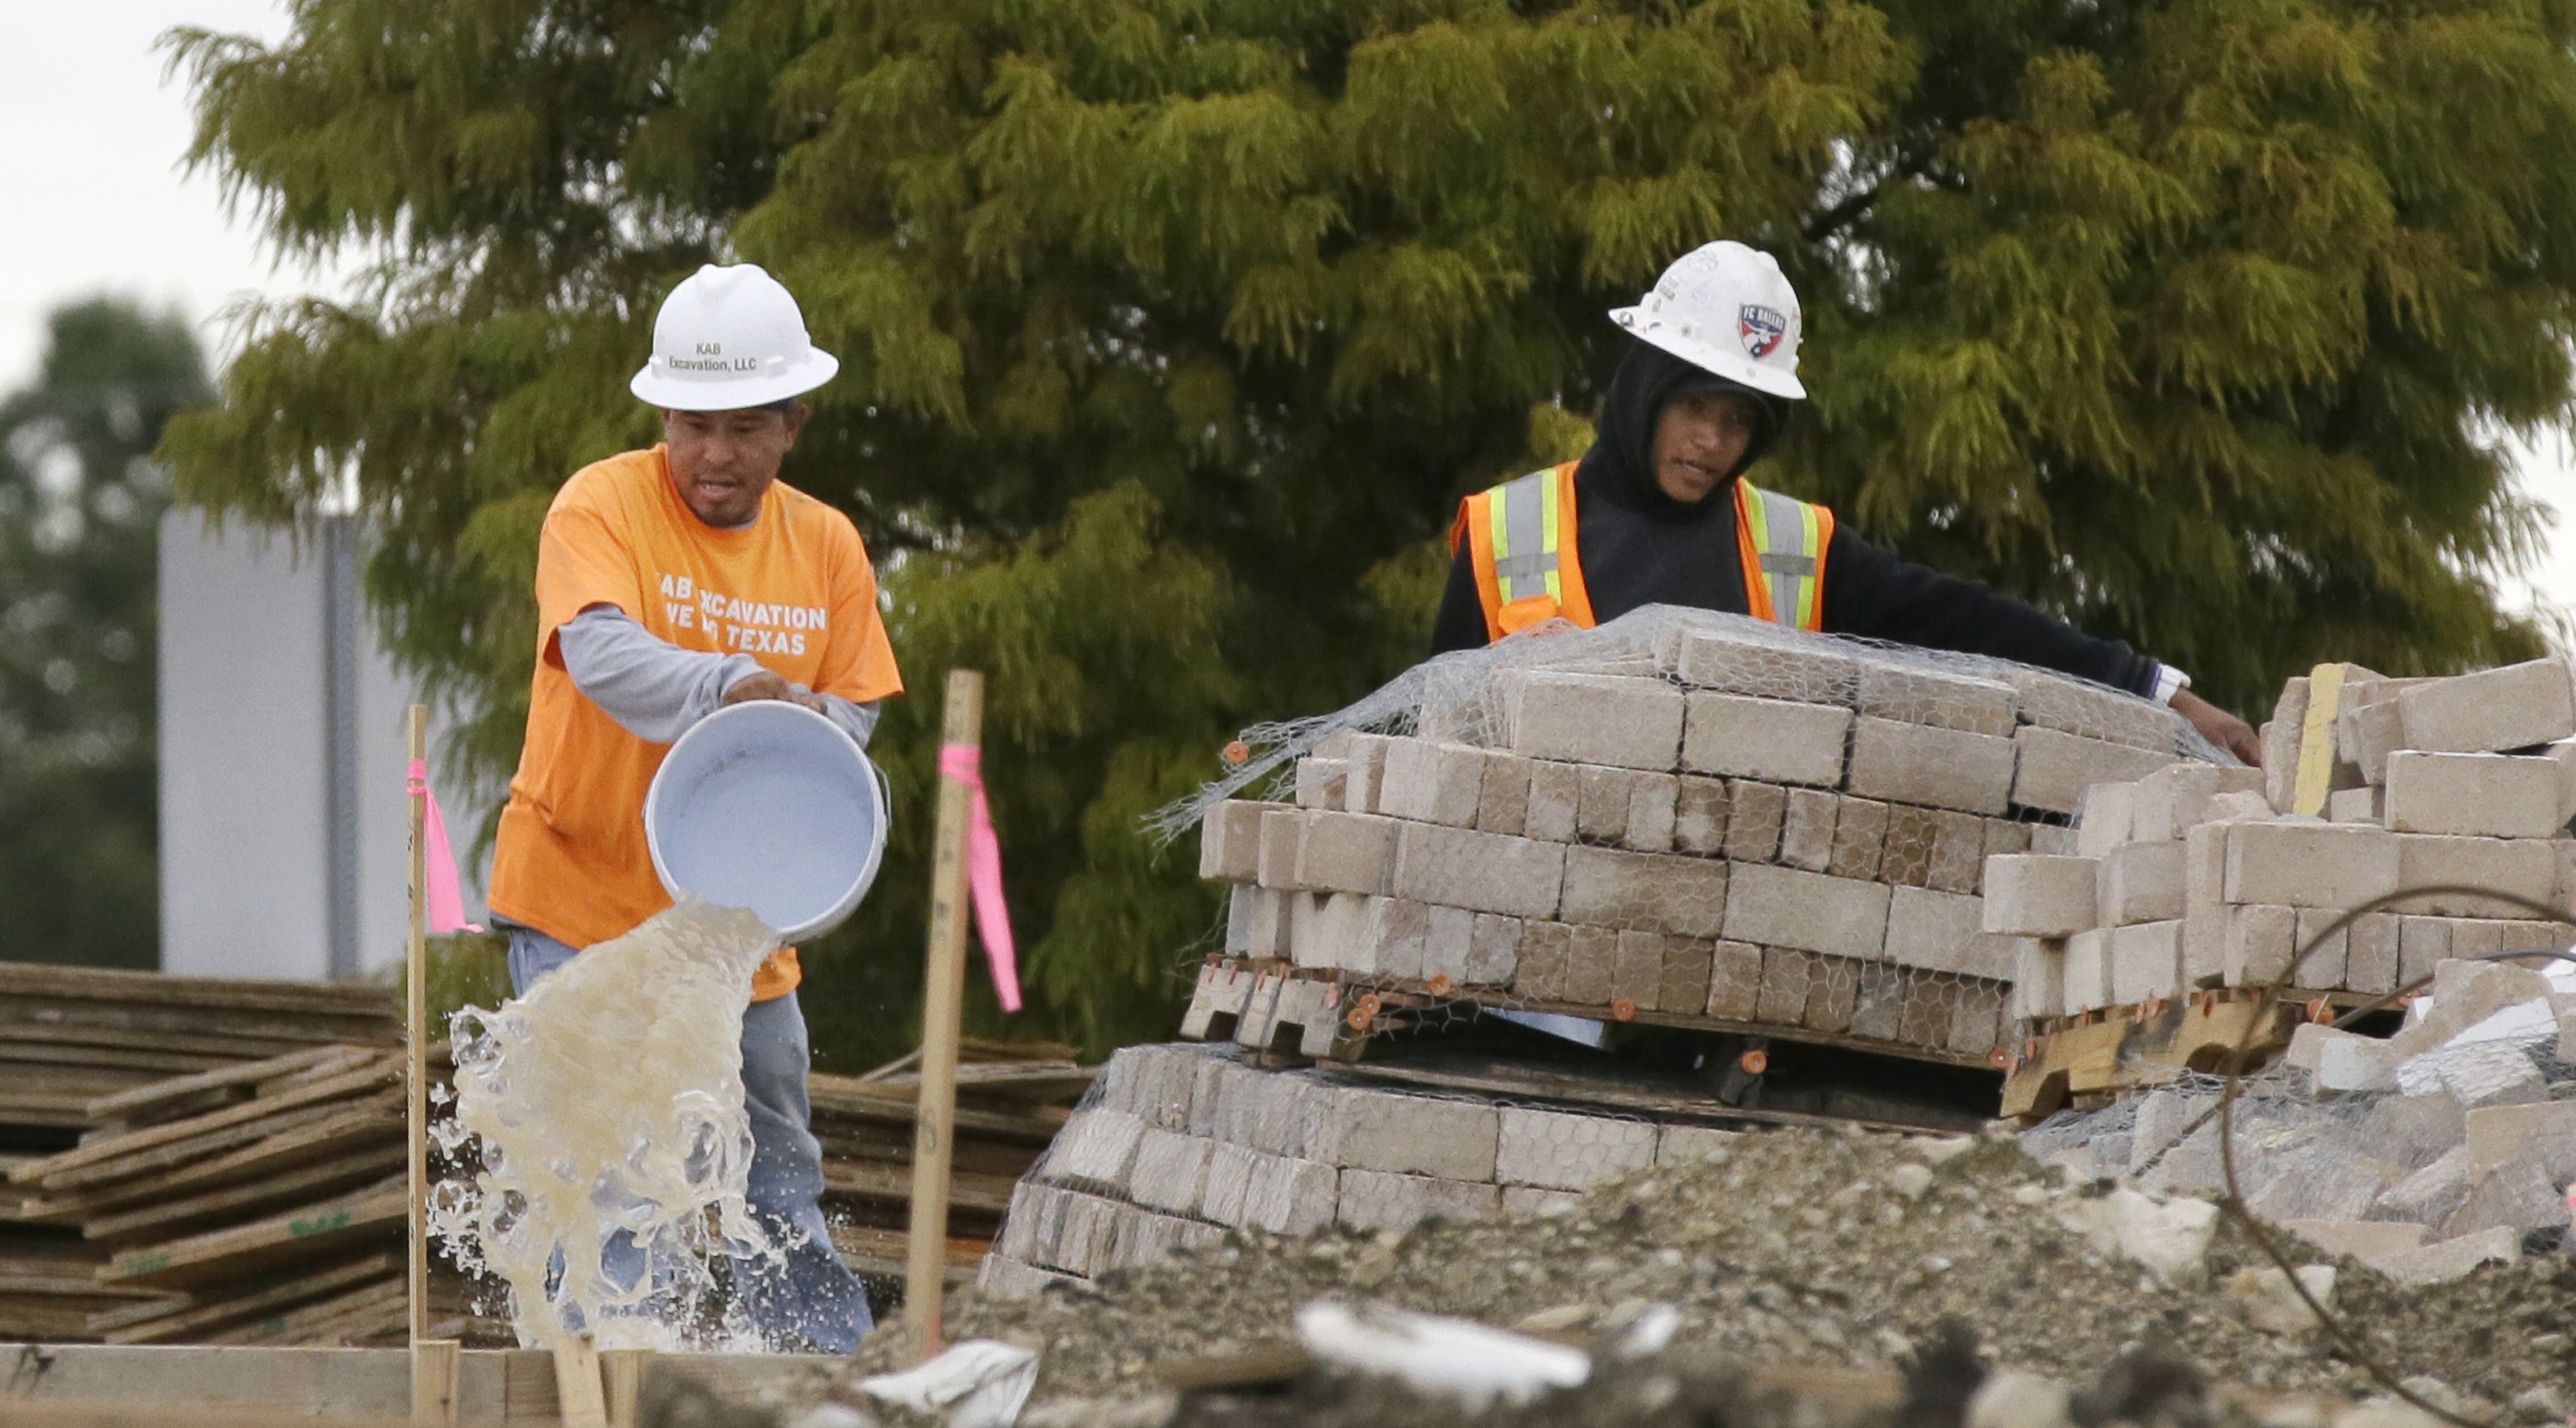 Workers bucket out water from a waterlogged construction site in the Dallas suburb of Richardson, Texas, Monday, Oct. 26, 2015. After a weekend of drenching storms that were remnants of Hurricane Patricia, the week in Texas starts clear without the death or devastation of torrential rain and floods that hit the state earlier in the year. (AP Photo/LM Otero)